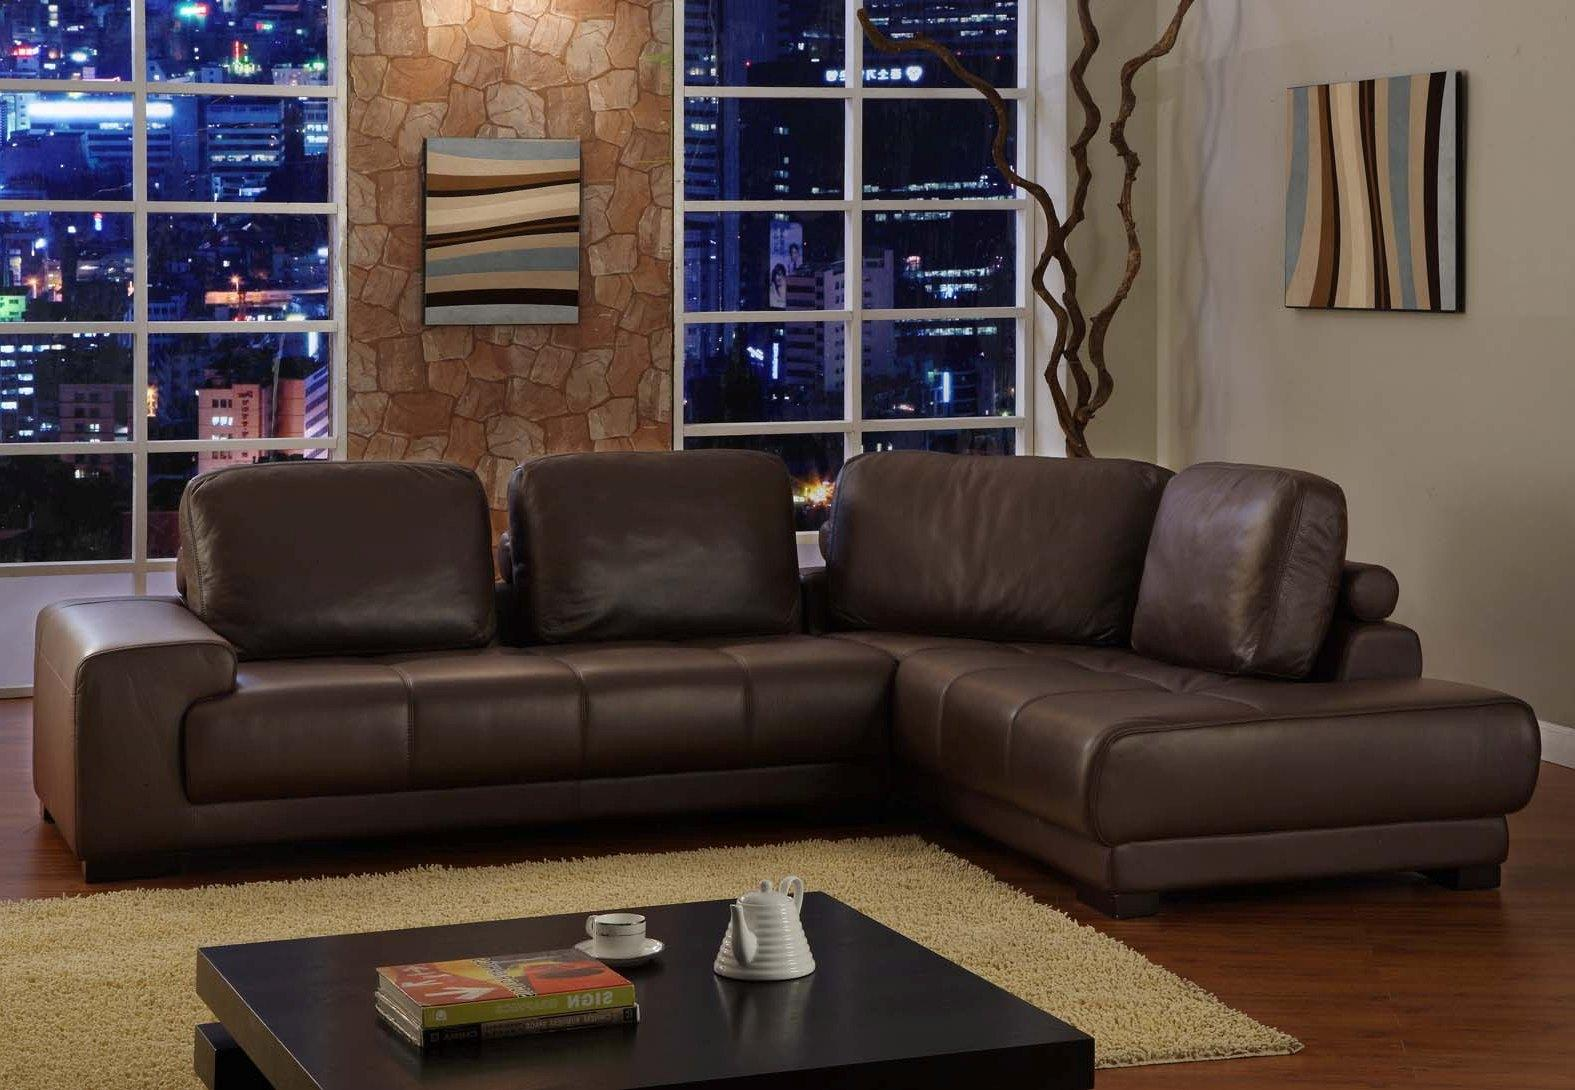 Attrayant Sectional Sofa Clearance In Modern Design With Brown Rug And Square Coffee  Table Together With Stunning